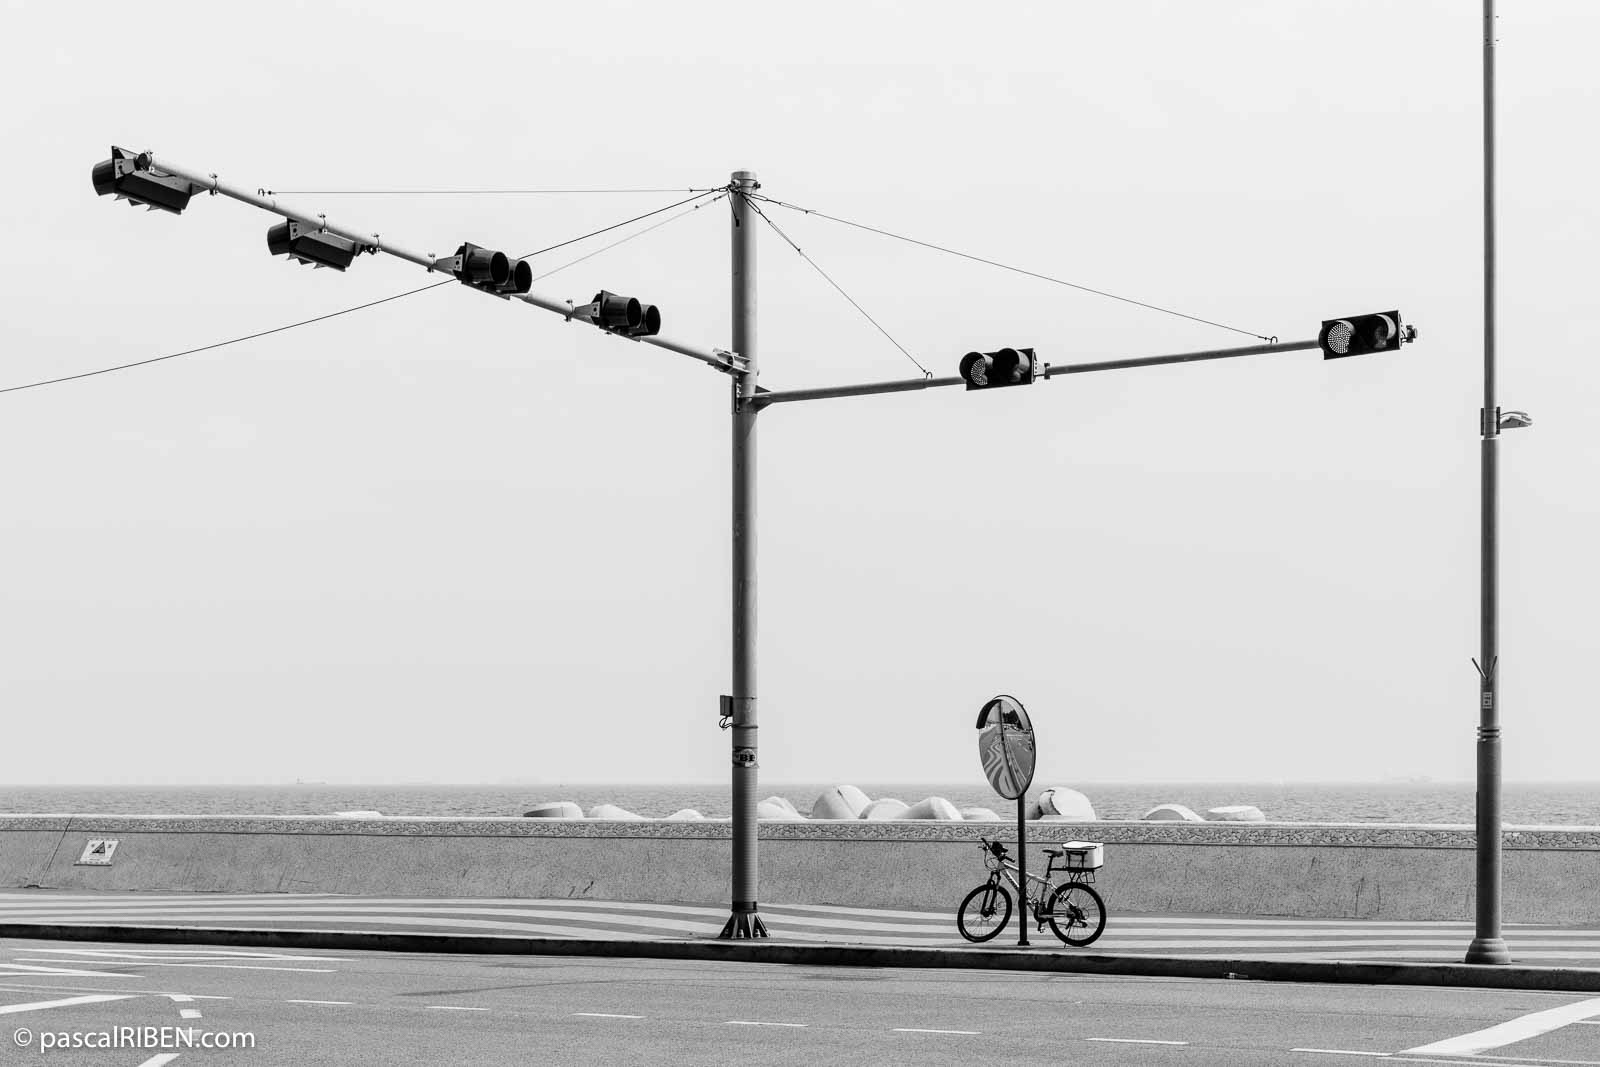 Lonely bicycle in Busan, South Korea, 2018